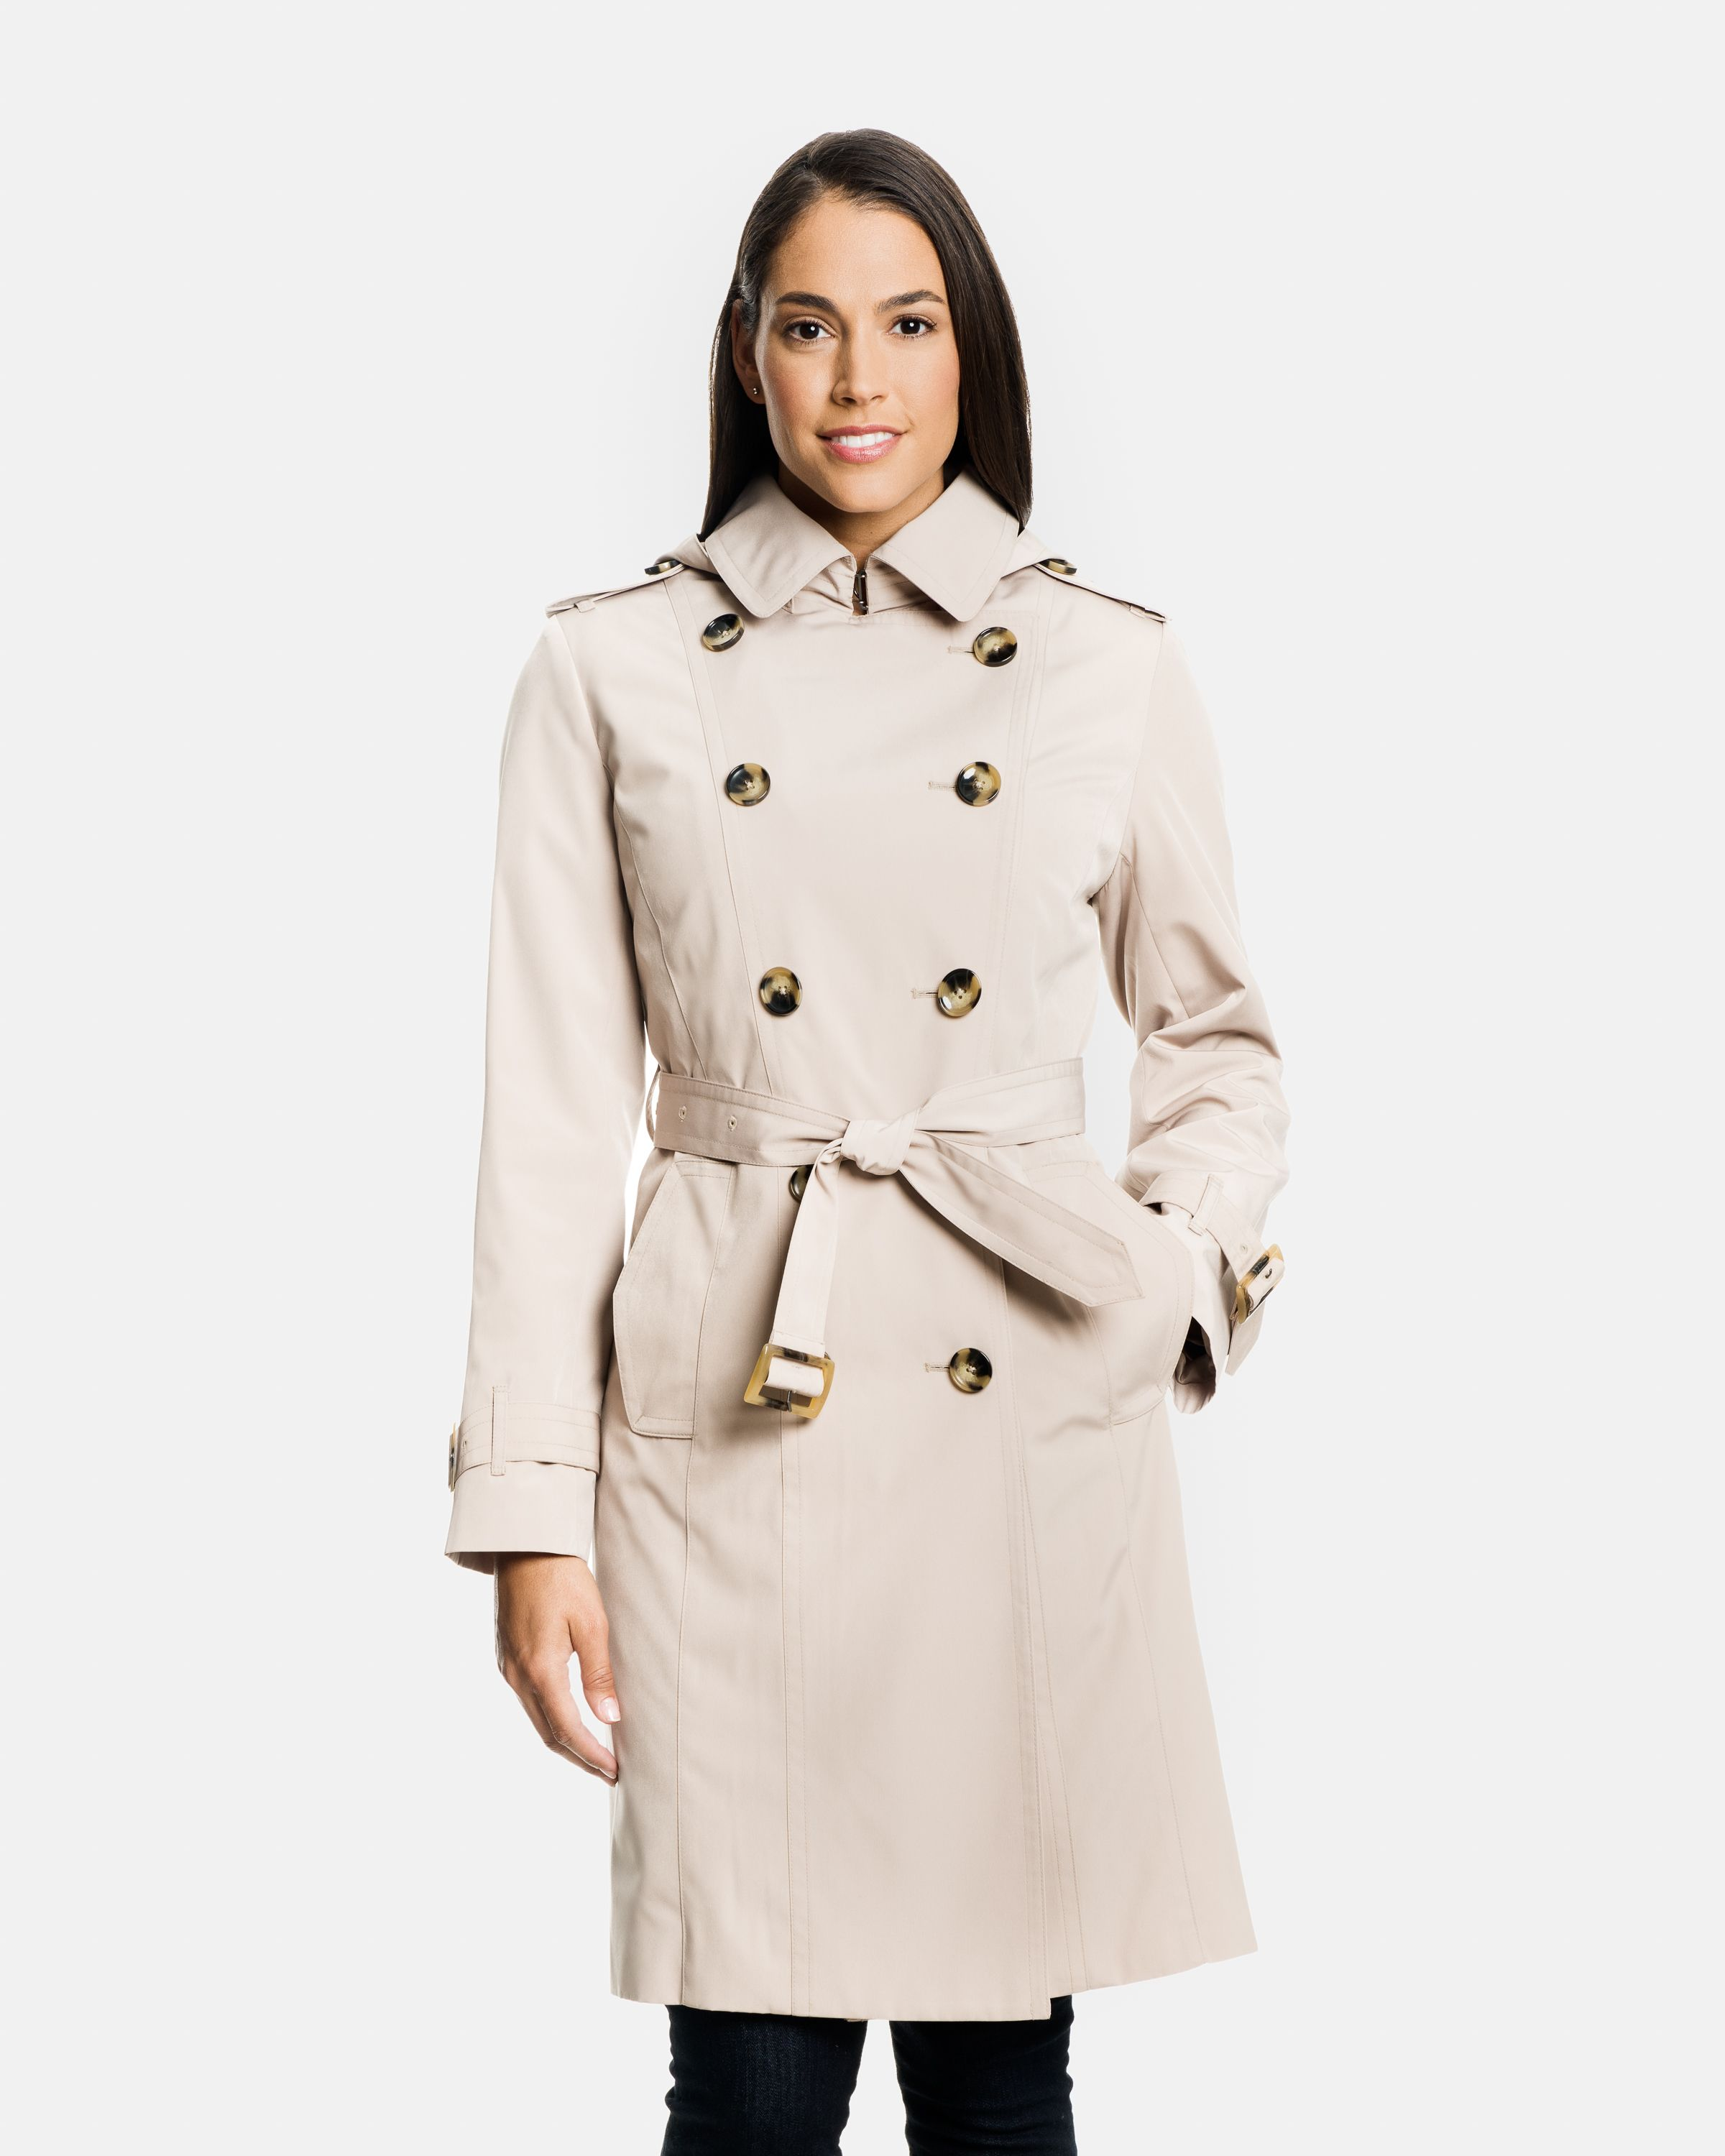 Double Ted Trench Coat, Classic London Fog Trench Coat